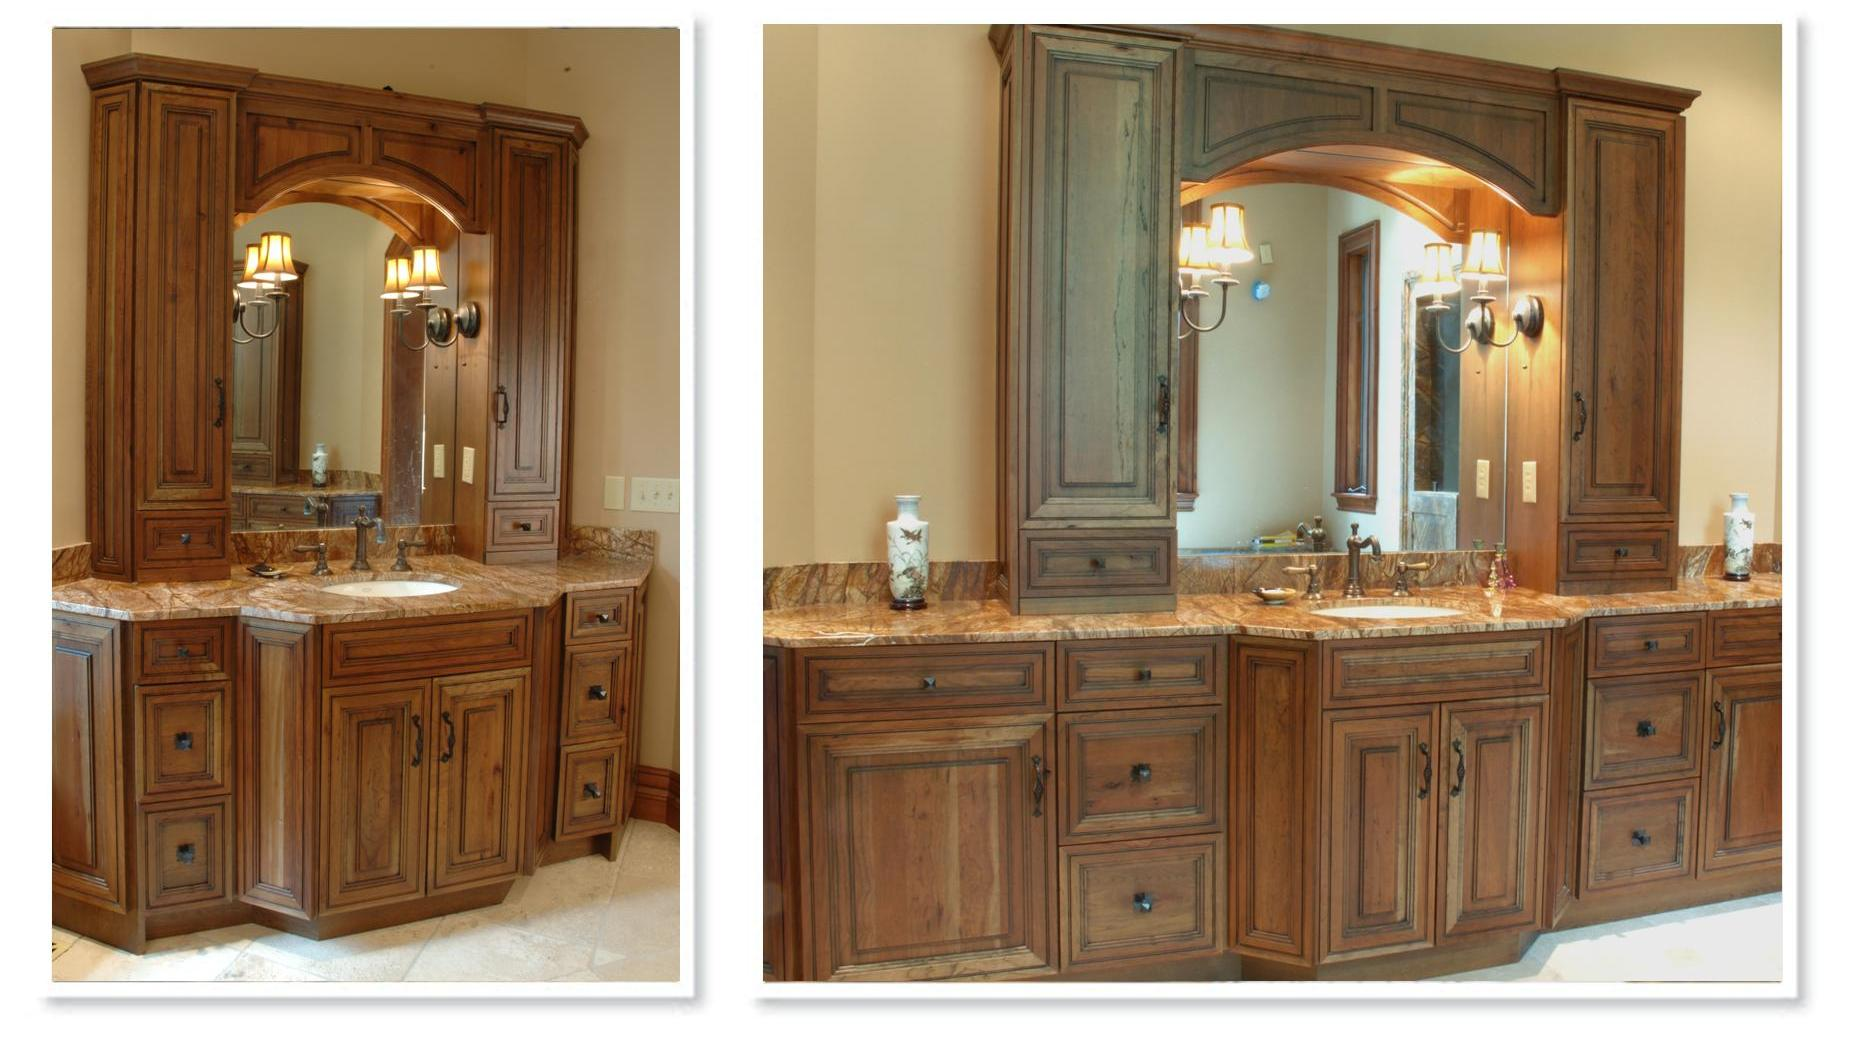 Knotty Cherry Cabinets http://beckallencabinetry.com/portfolio/bathroom/14-2/